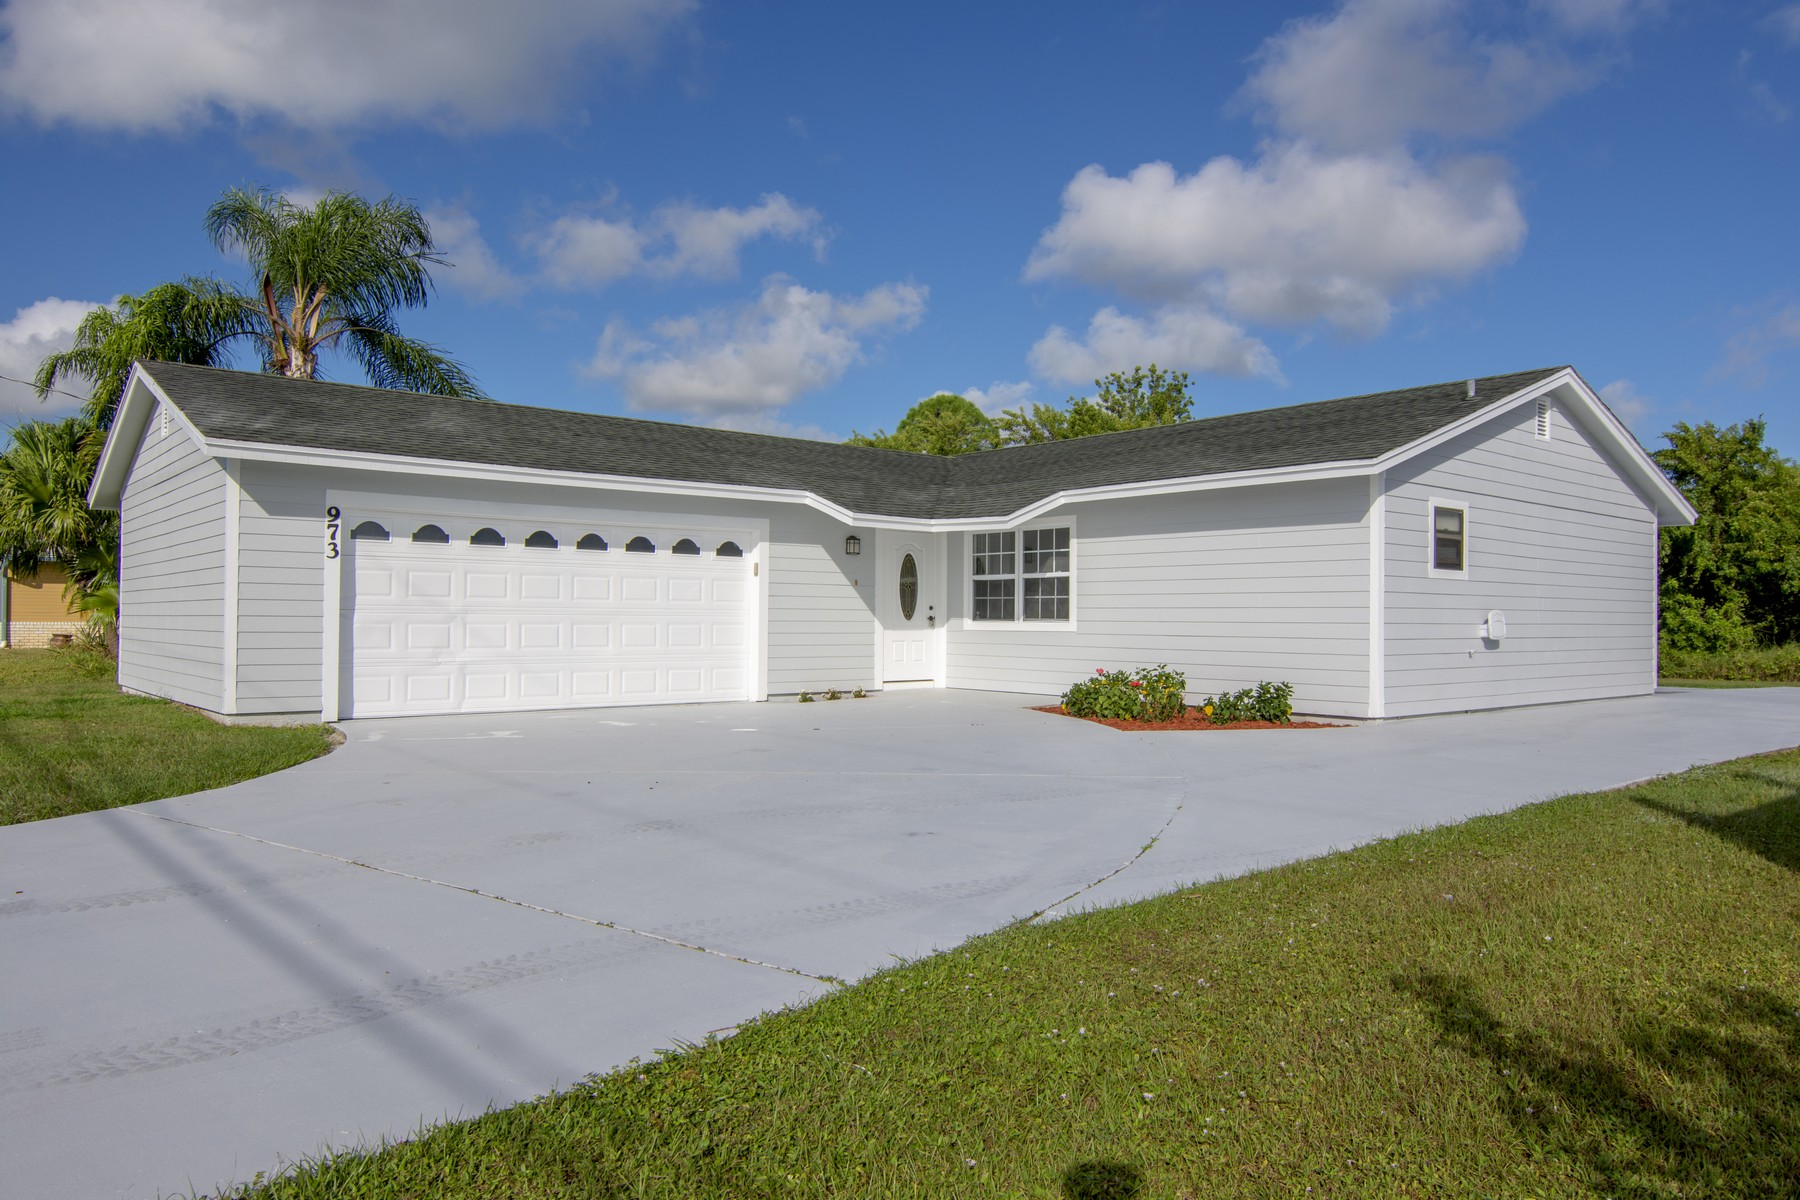 Single Family Home for Sale at Beautifully Renovated Three Bedroom Home 973 SW Jaslo Avenue Port St. Lucie, Florida 34953 United States